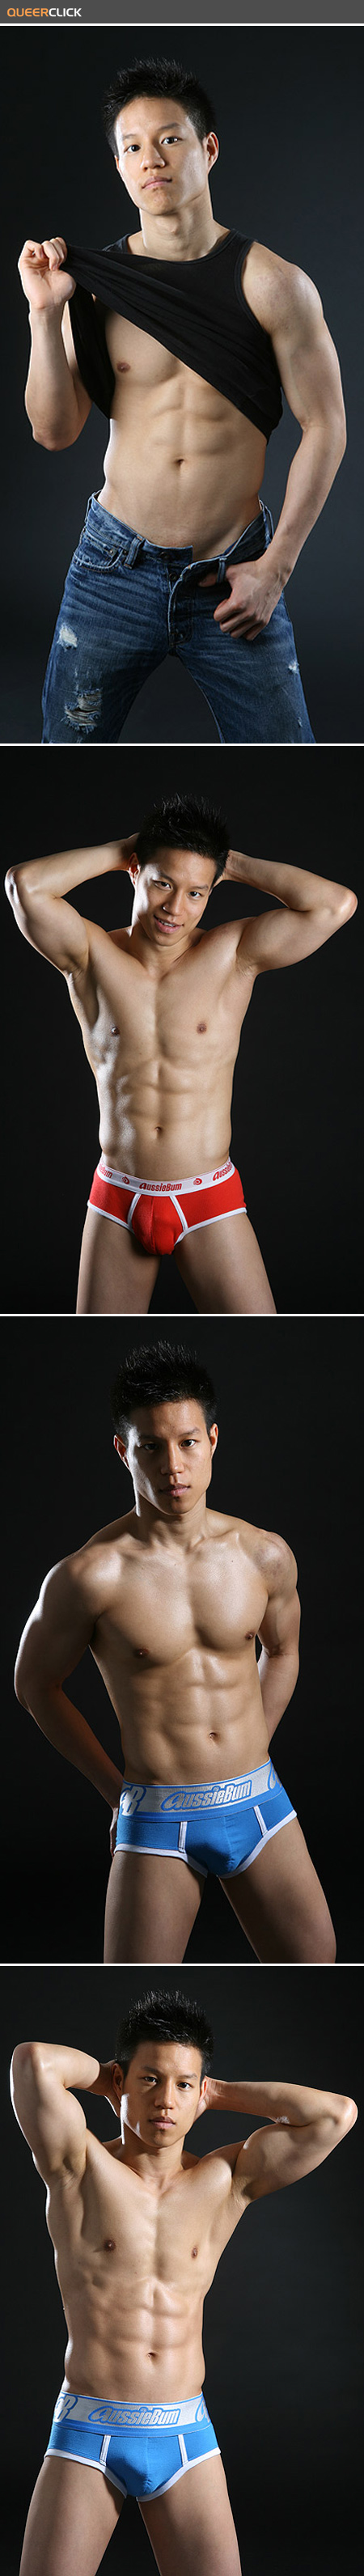 hot_asian_man_110.jpg